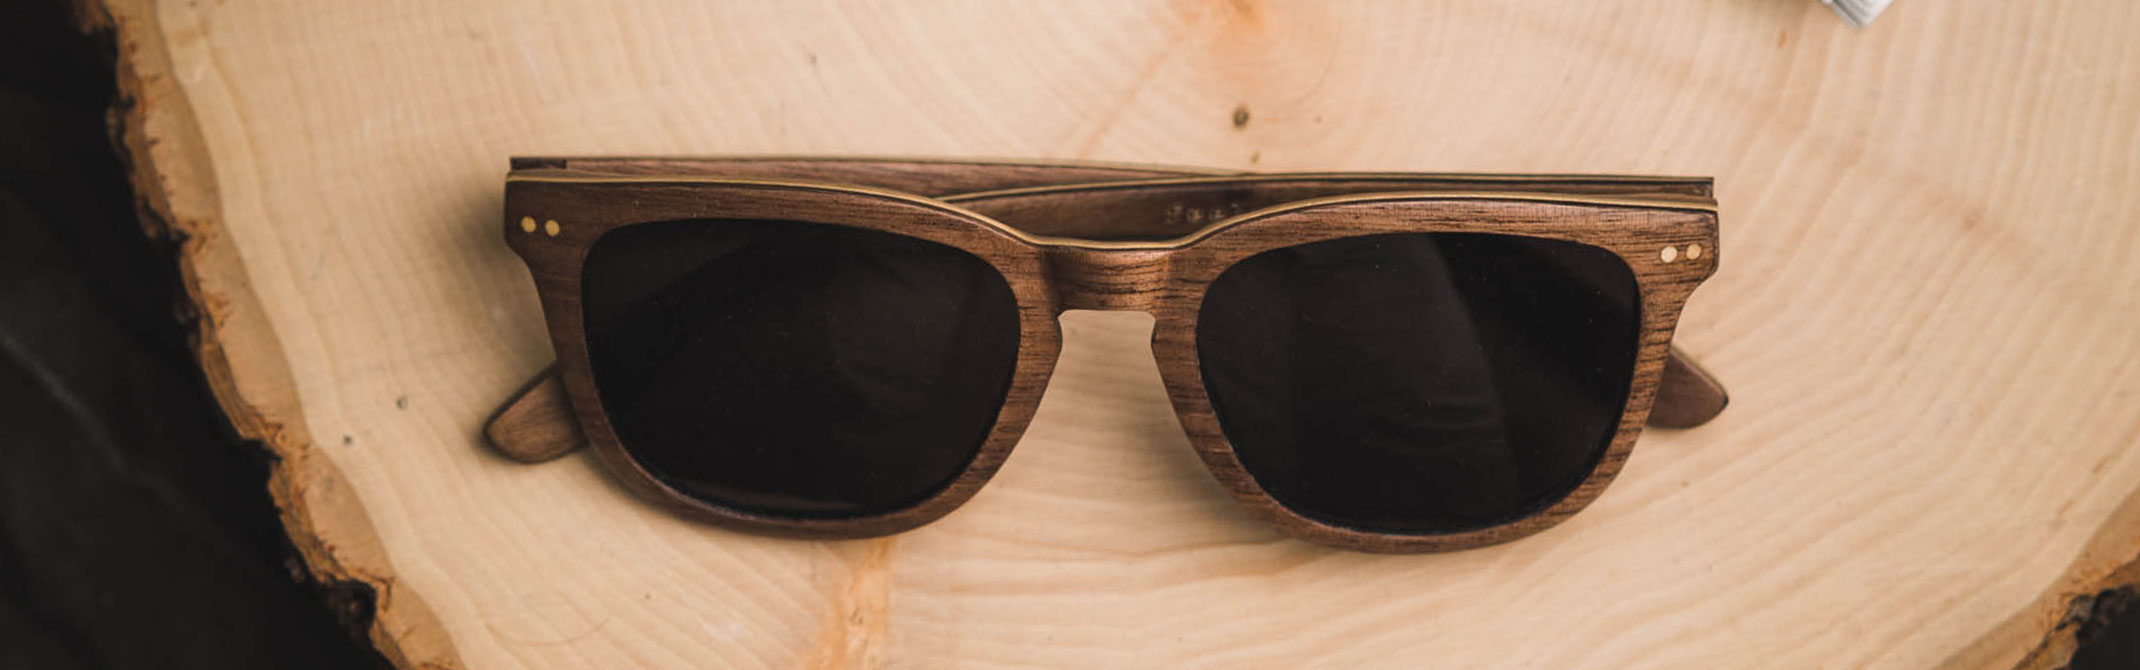 Tmbr. Men's Wood Frame Sunglasses